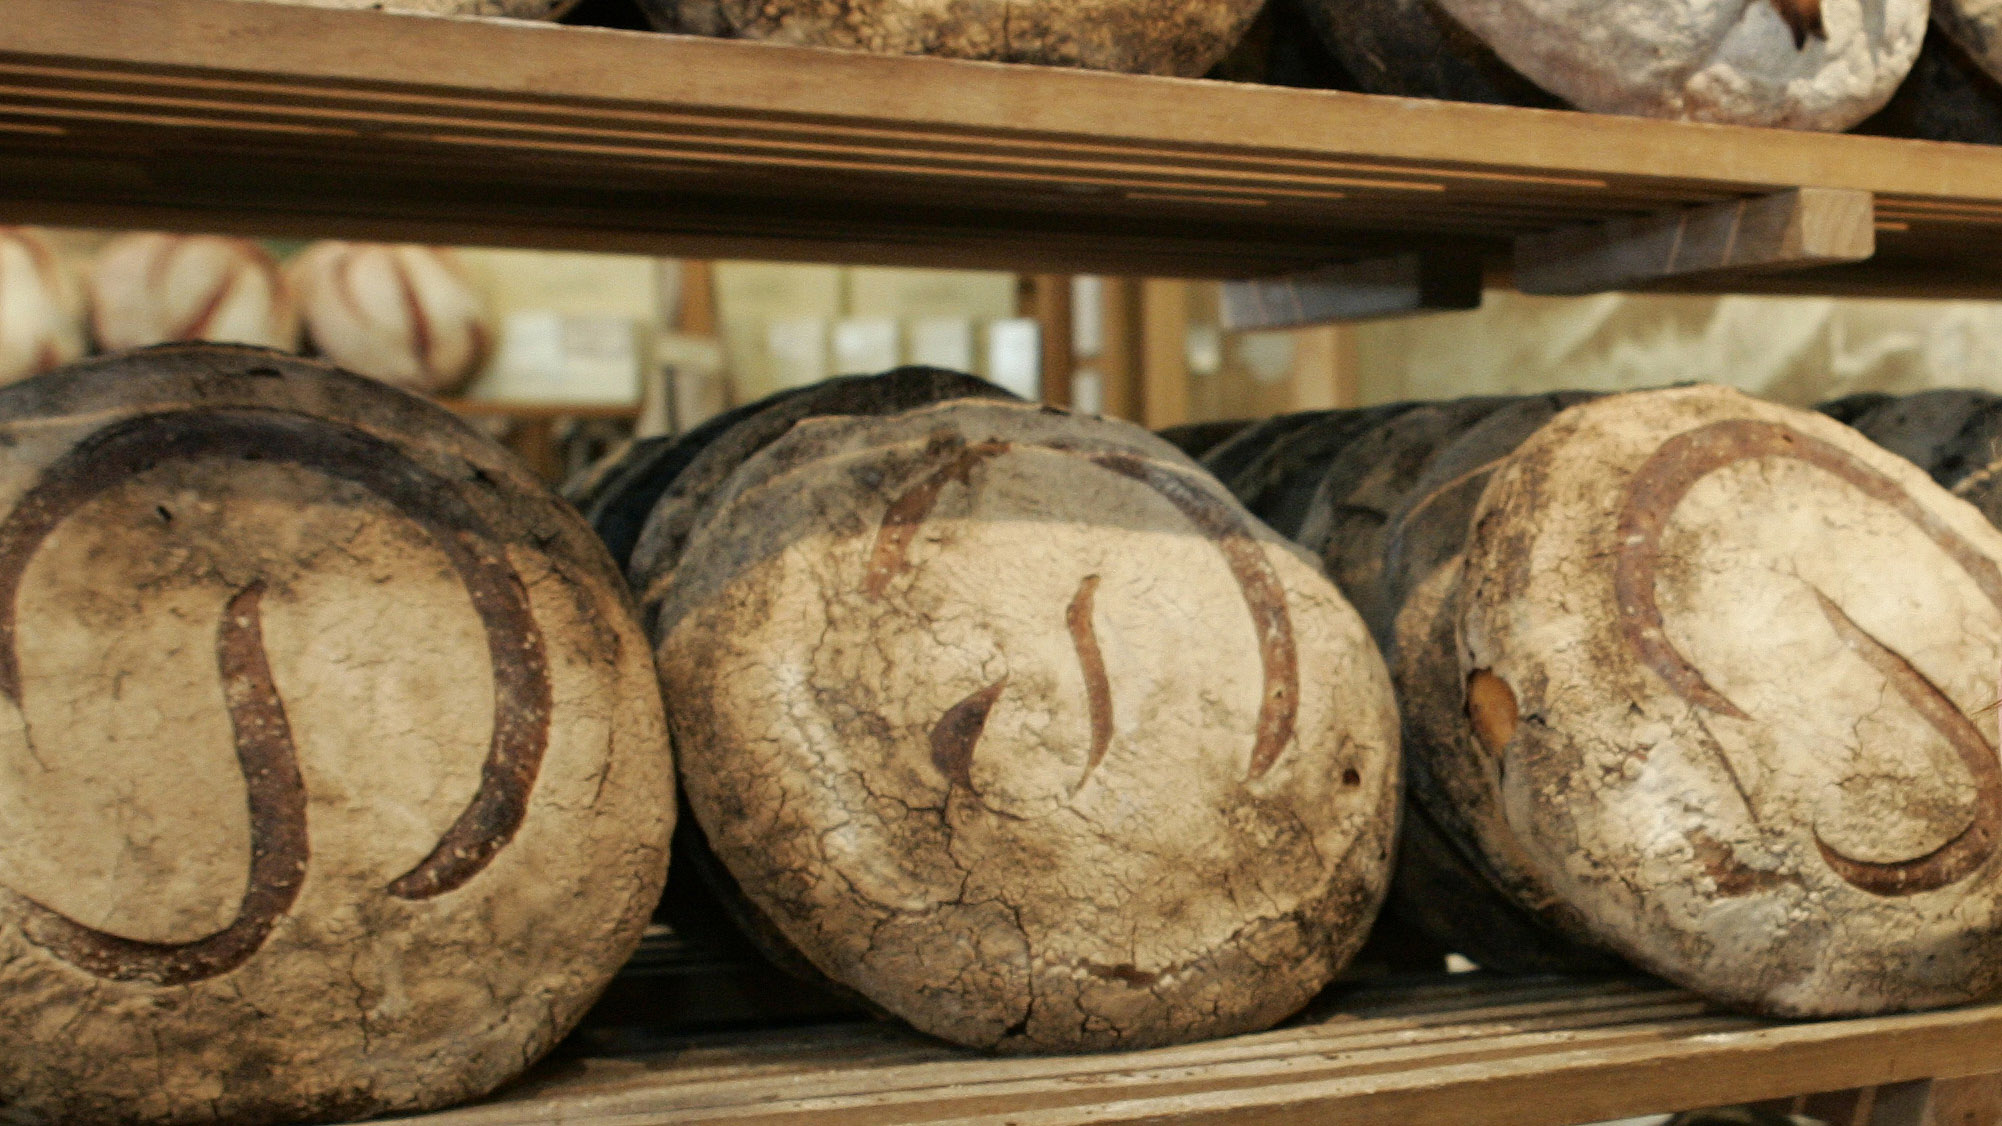 Freshly baked Miche line the walls at the original Poilane family bread bakery in Paris.